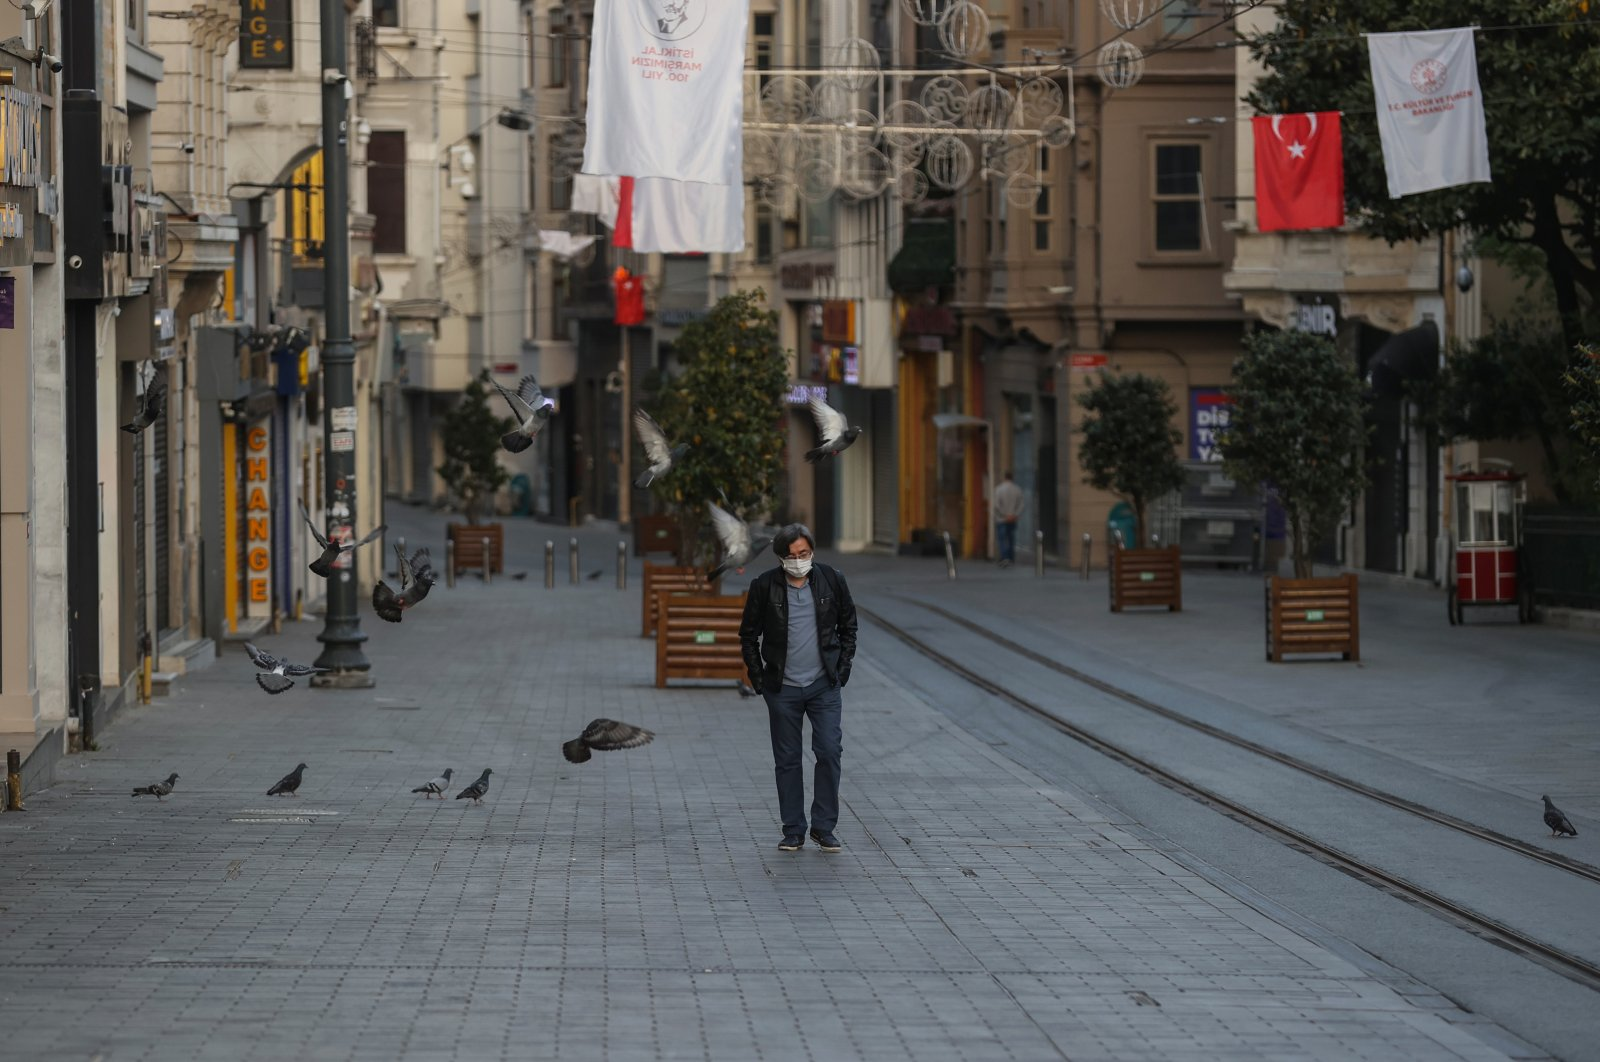 A man walks on otherwise busy Istiklal Avenue, in Istanbul, Turkey, May 3, 2021. (AA PHOTO)